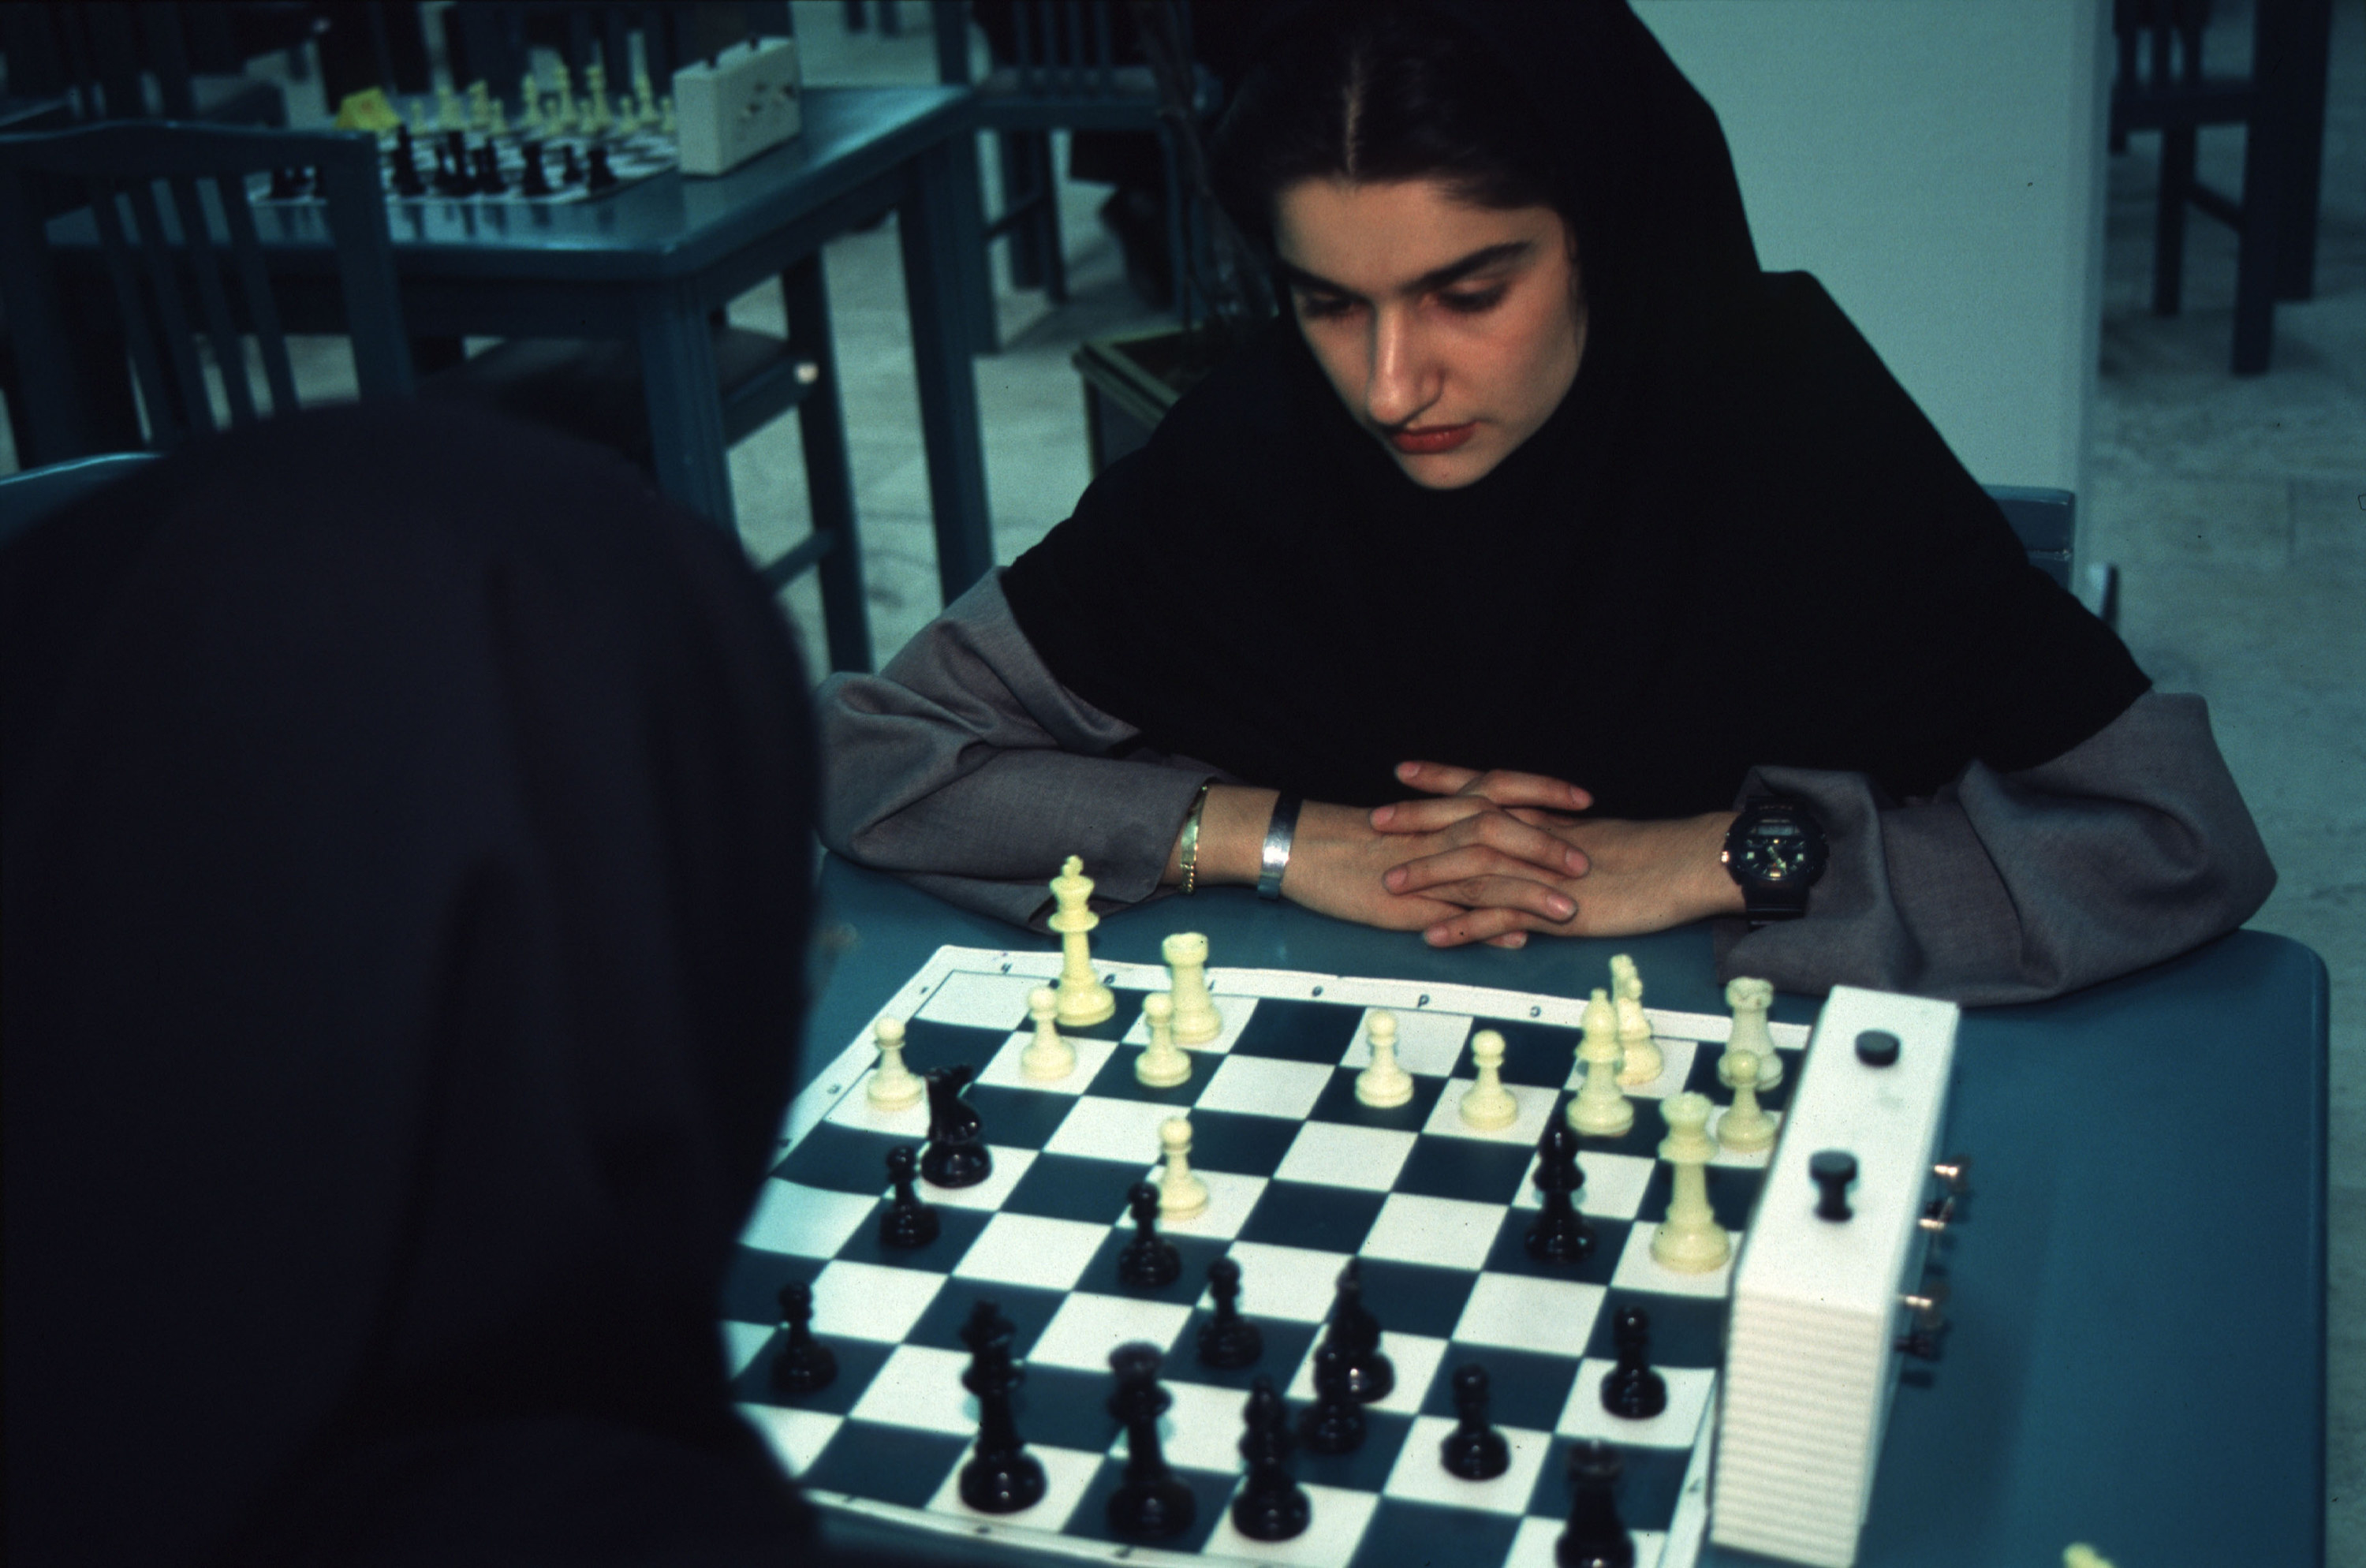 Two women with head coverings playing chess